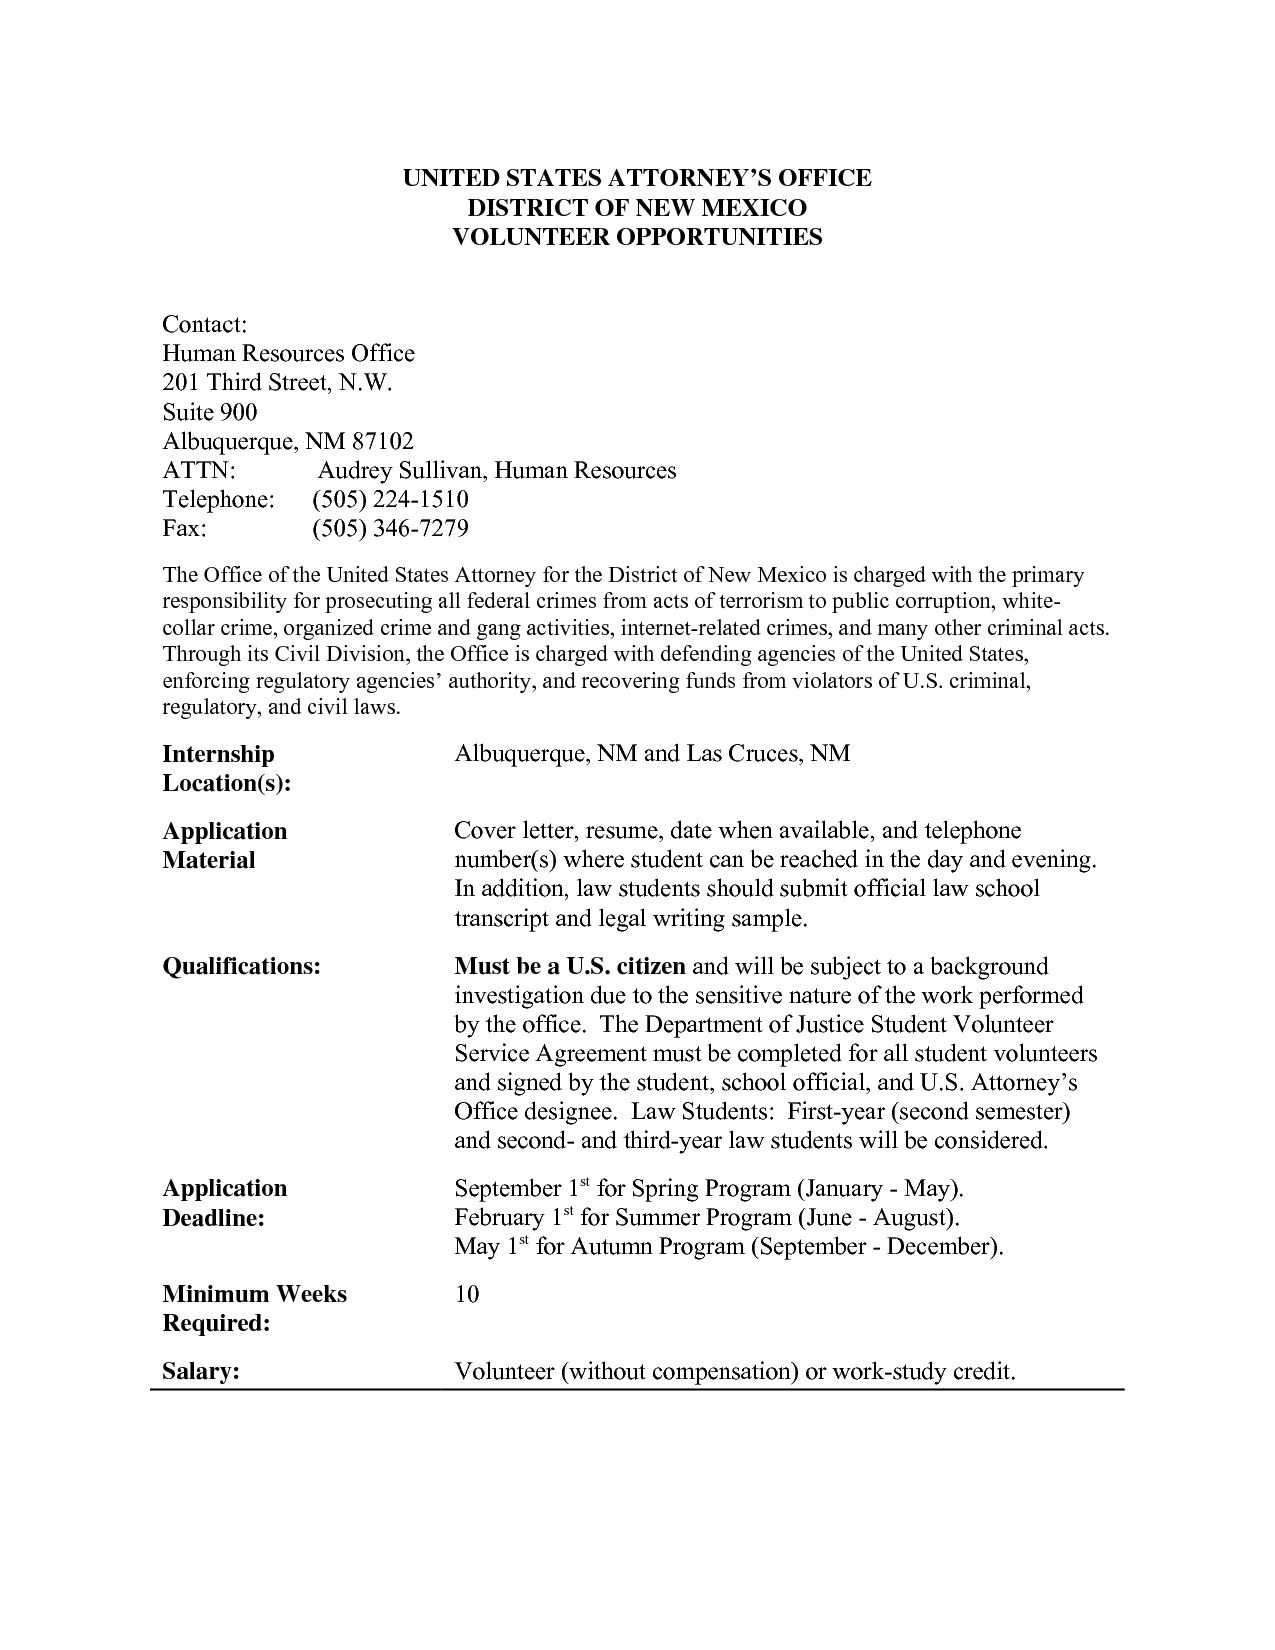 Experience On A Resume Cool Sample Resume with Volunteer